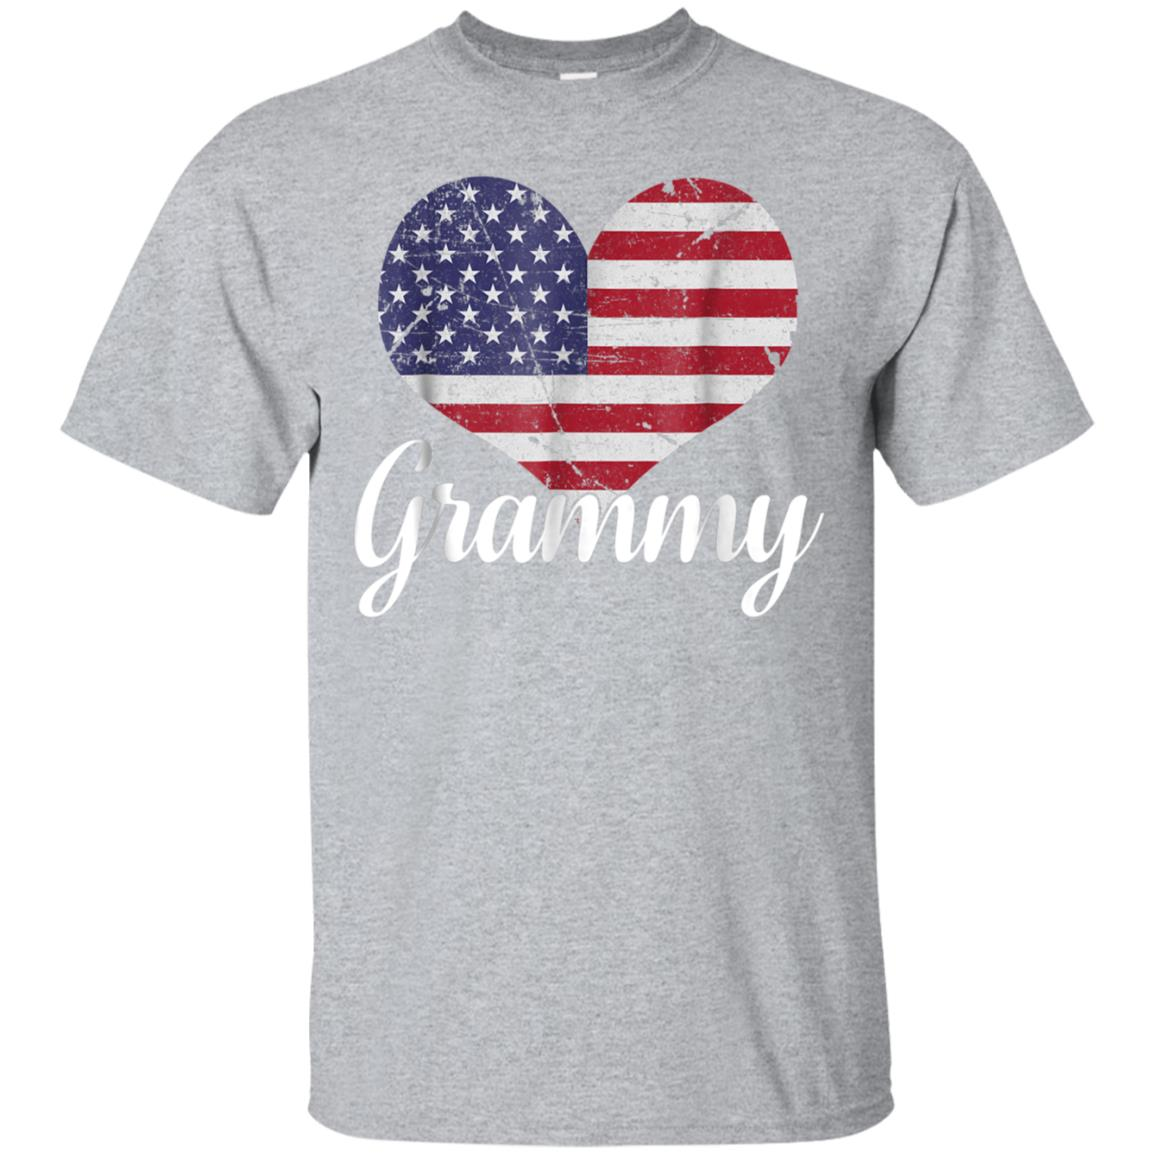 Grammy USA Heart Flag T-Shirt Grammy American Flag 99promocode